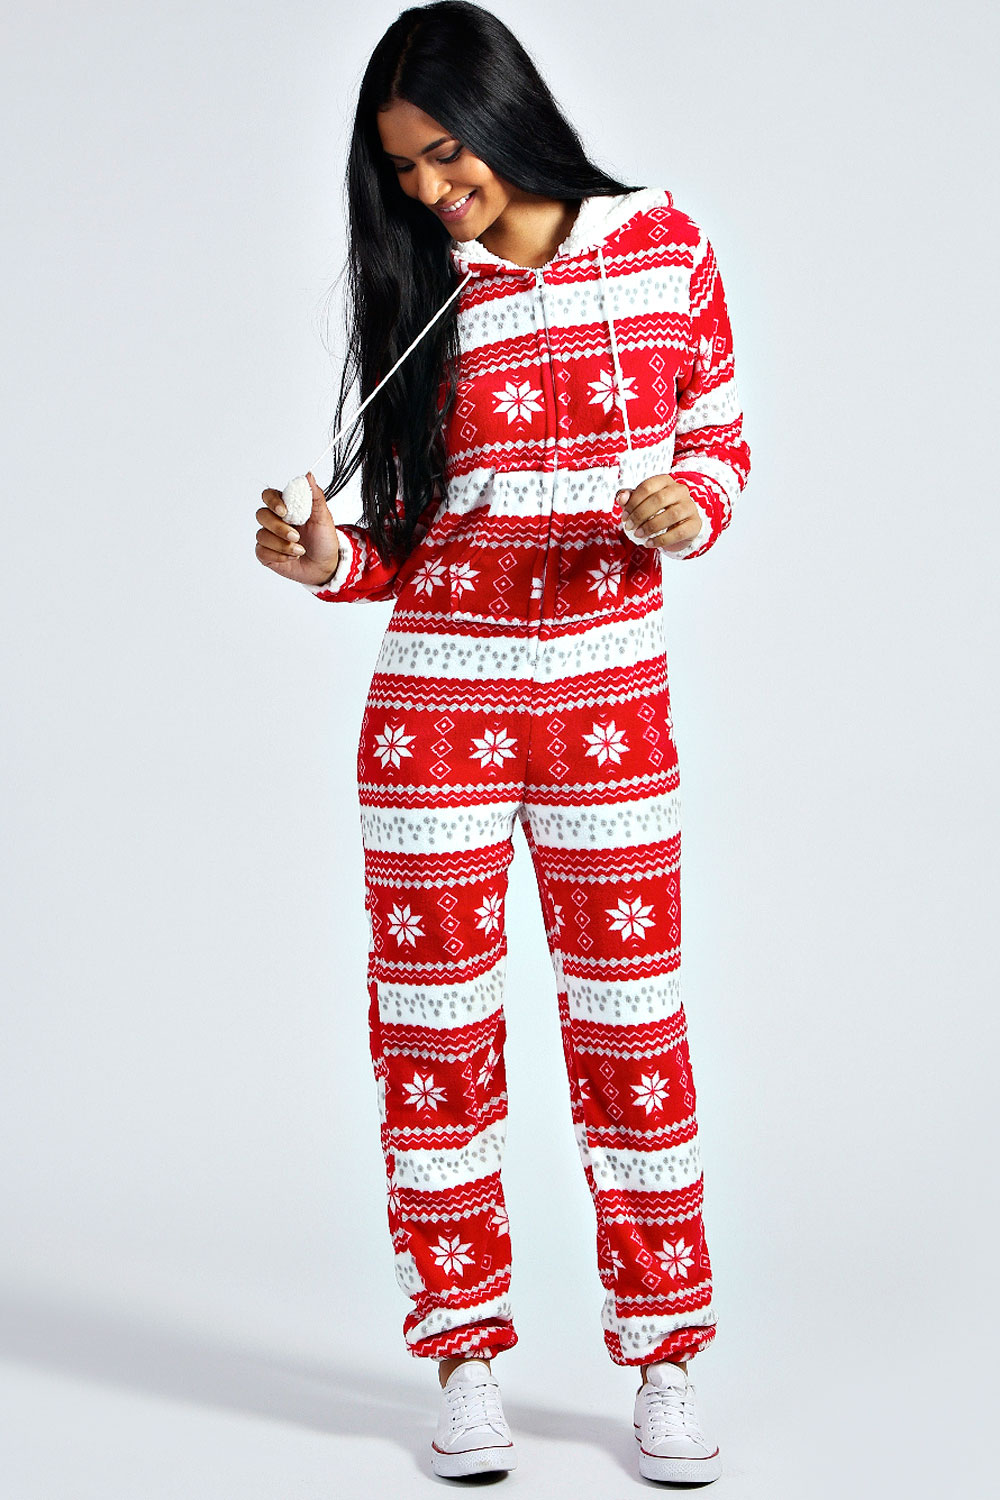 Christmas onesies / Onesies for adults / Onesies for men / Onesies for women Santa Onesie & Elf Onesie Christmas Onesies are here & Santa is coming to town! spread the festive spirit around your house hold with these Santa Onesie & Elf Onesie.